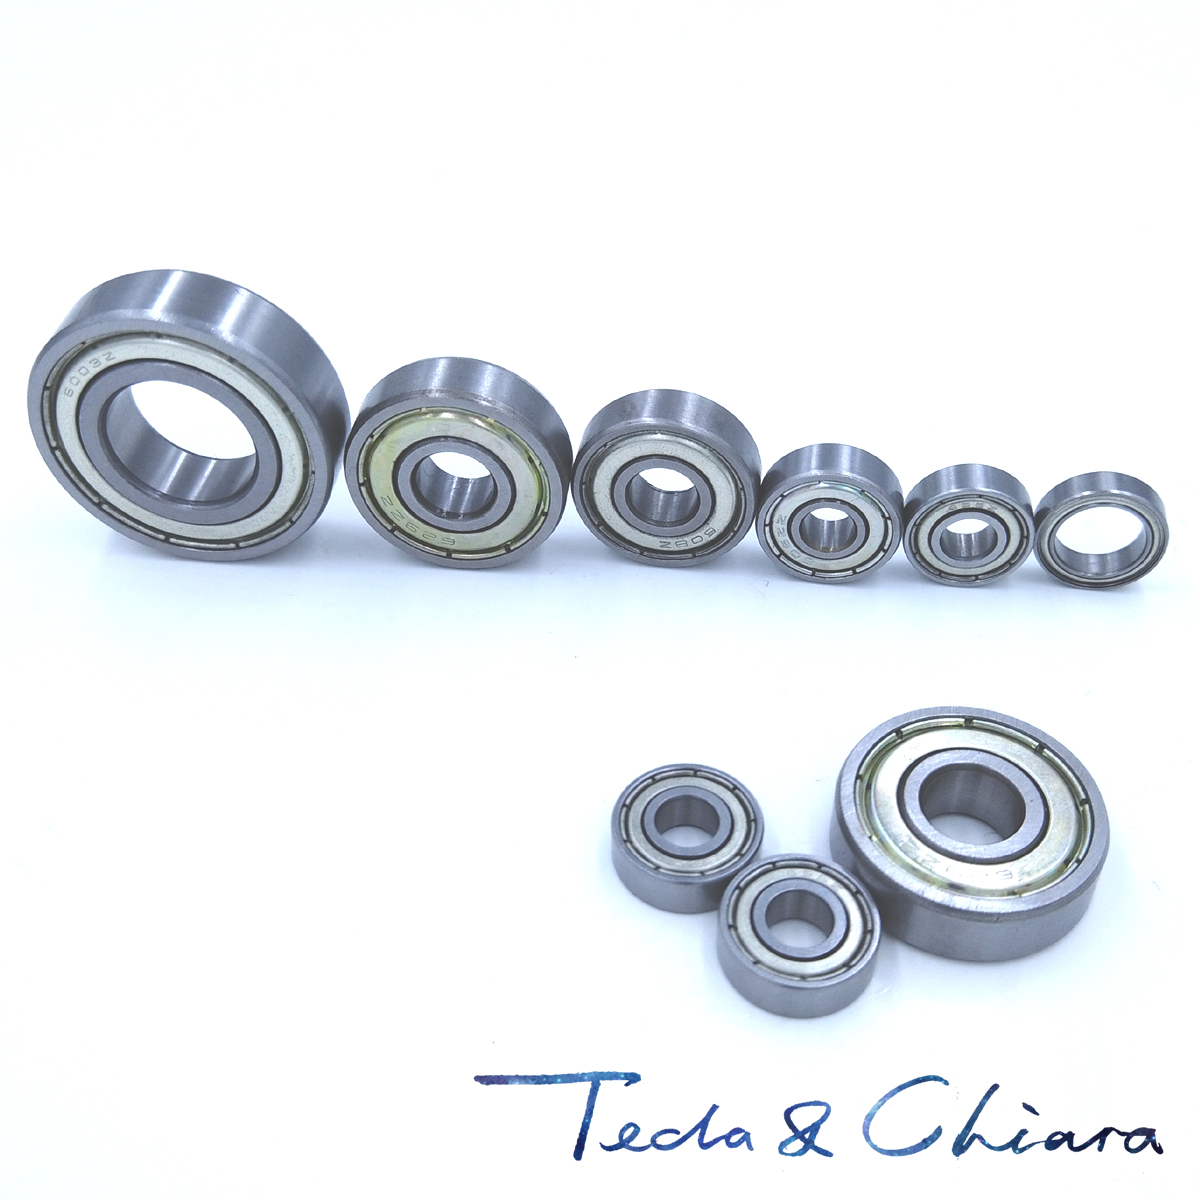 10Pcs 6204-2Z <font><b>6204ZZ</b></font> <font><b>6204zz</b></font> 6204 zz Deep Groove Ball Bearings 20 x 47 x 14mm Free shipping High Quality image